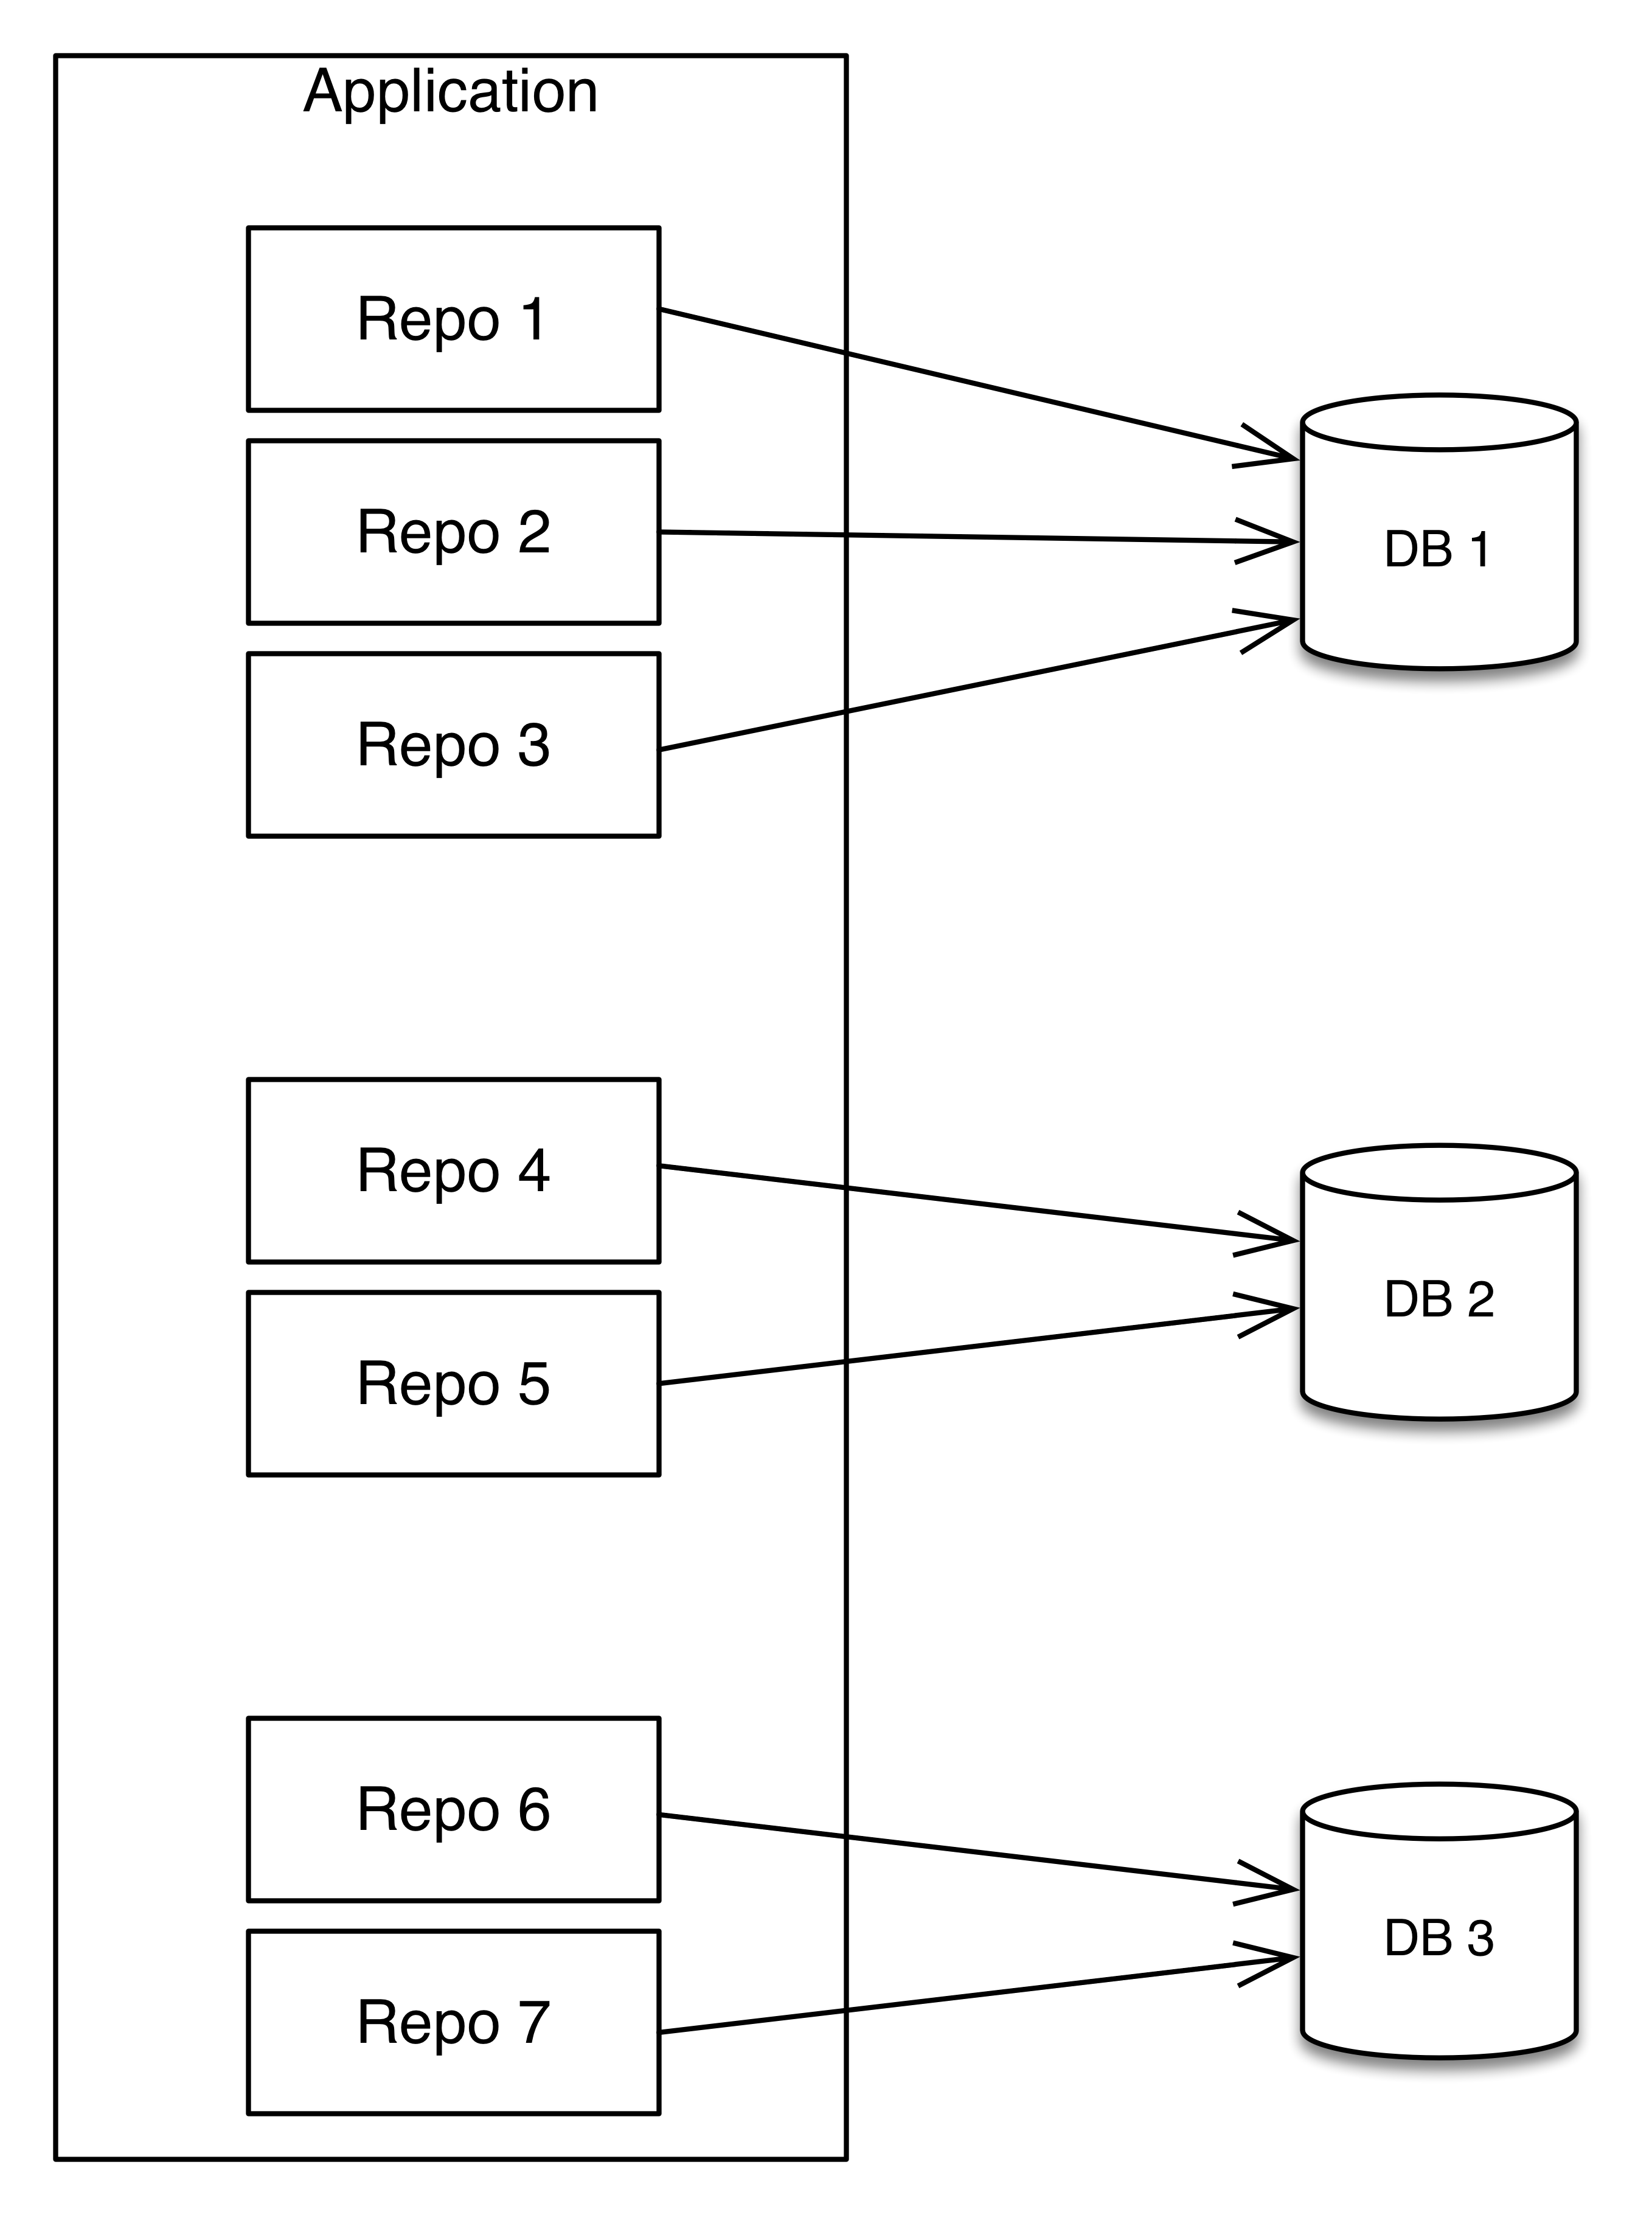 Spring Boot: Multiple MongoDB connections with repositories